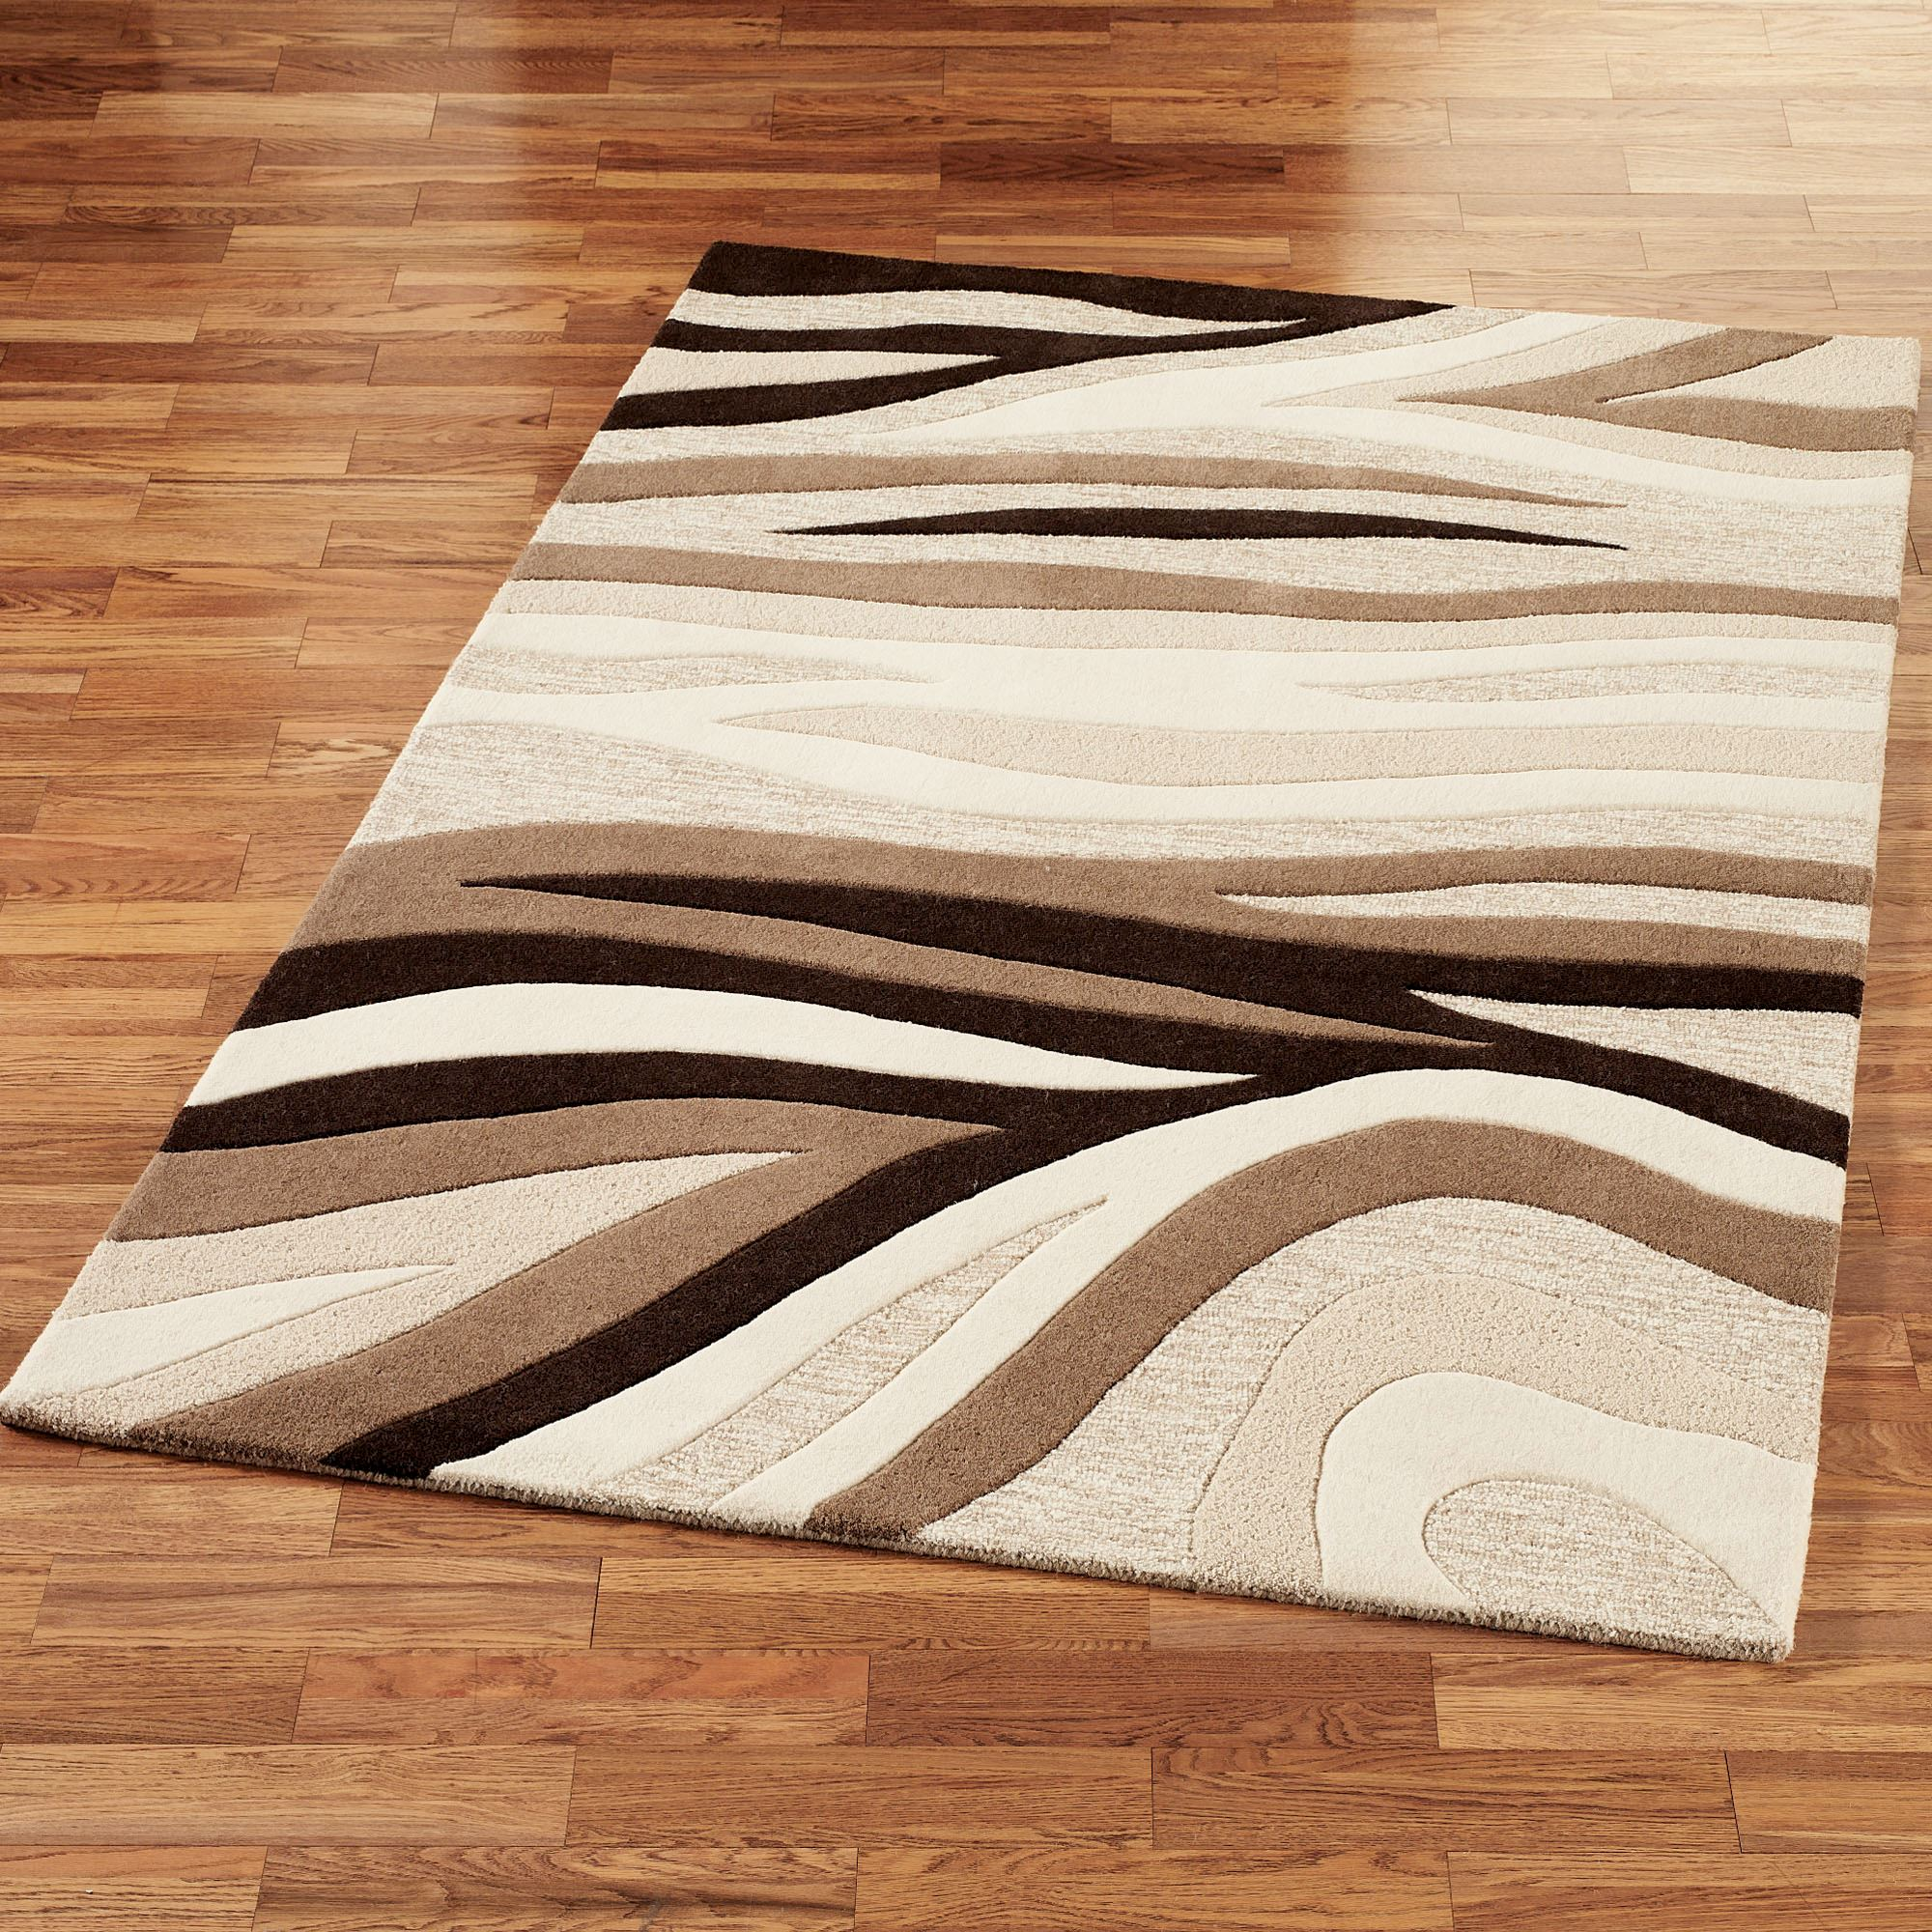 vista plain pile mats beige rugs page fancy floors portfolio shaggy rug floor